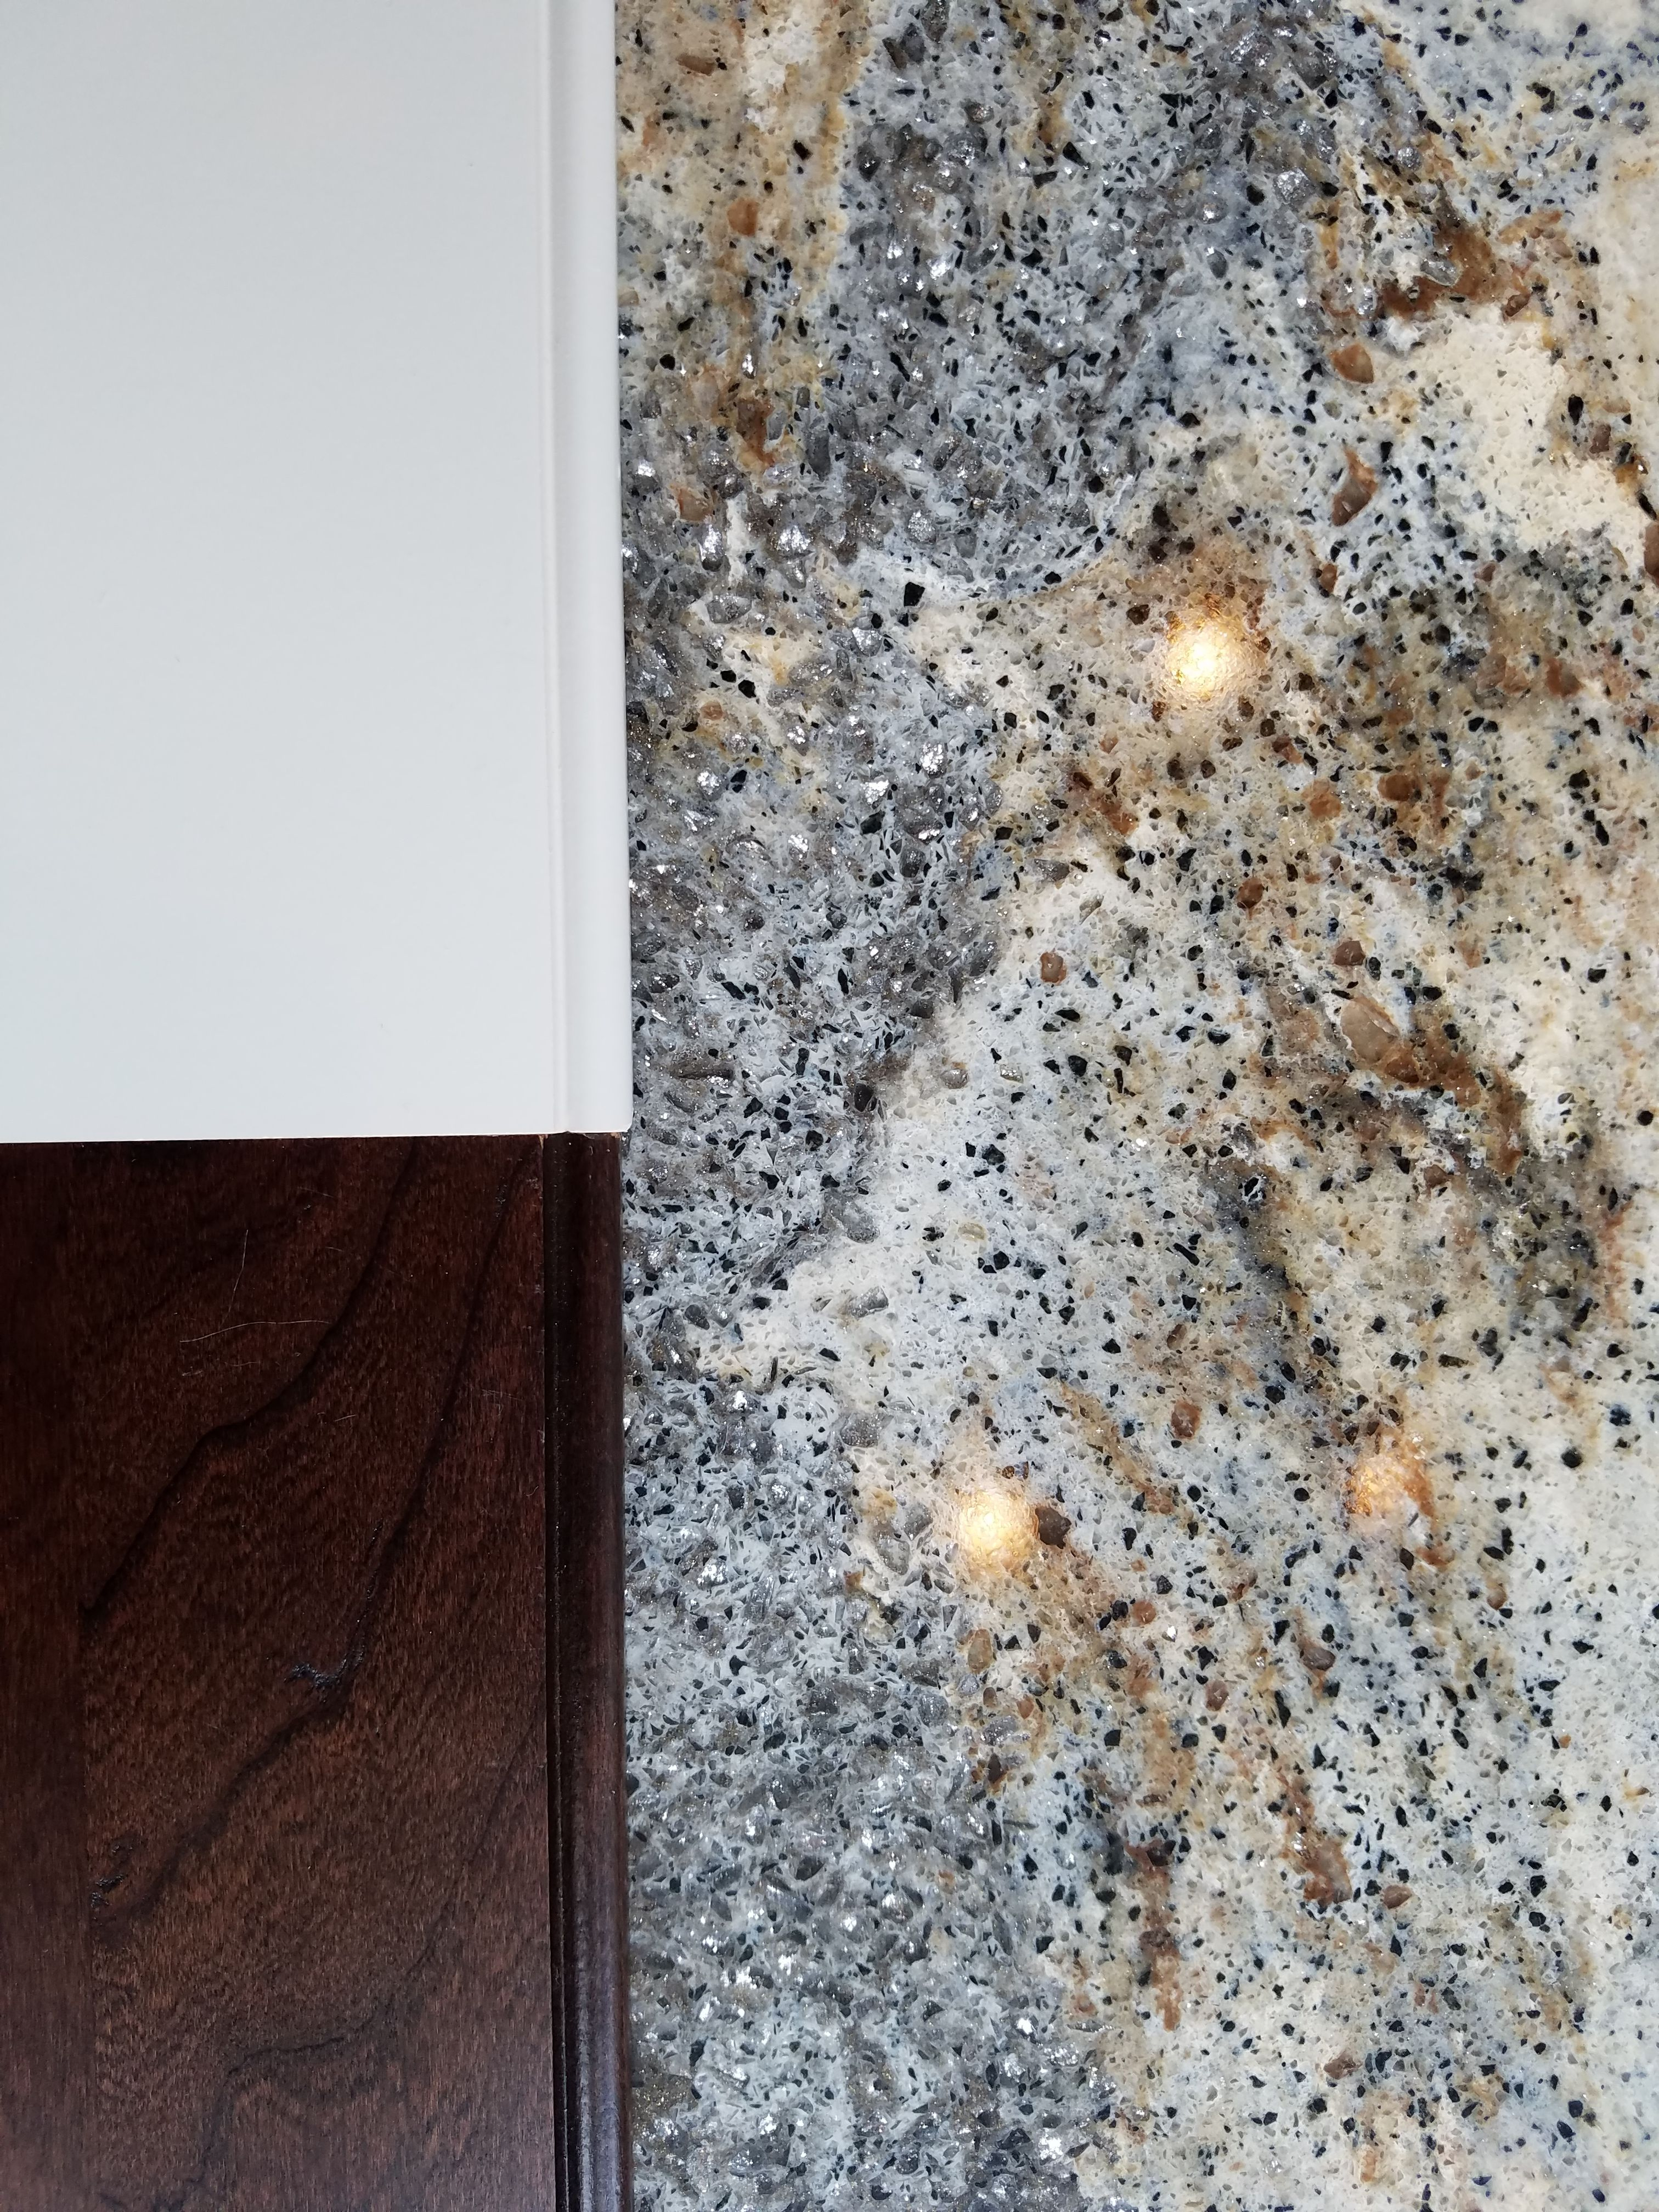 How To Clean Quartz Countertops Stains This New Cambria Helmsley Design Goes Fantastic With